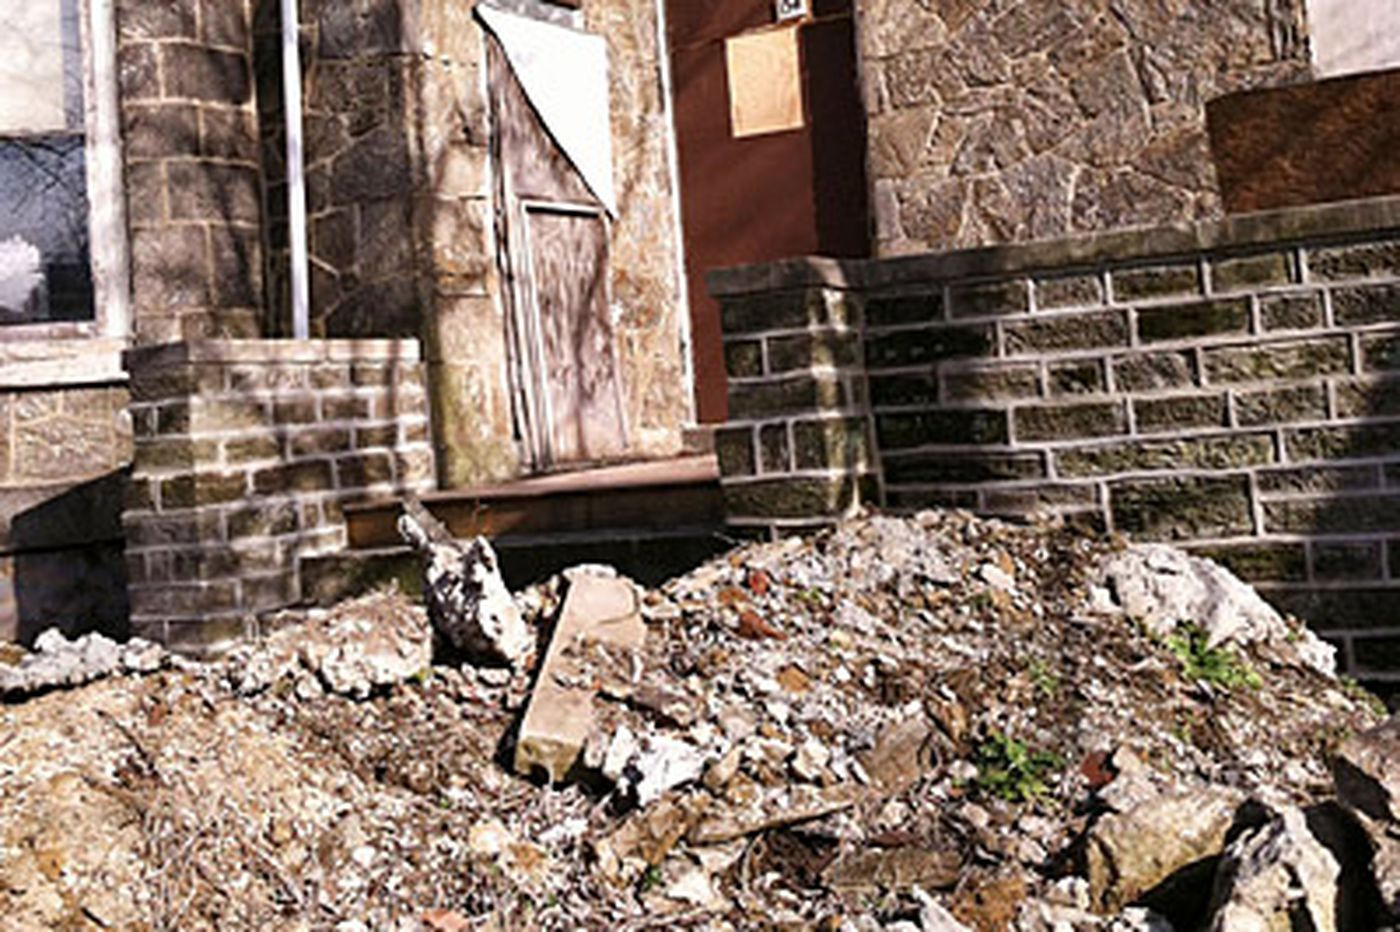 His mansion's crumbling - but city can't seem to take him down